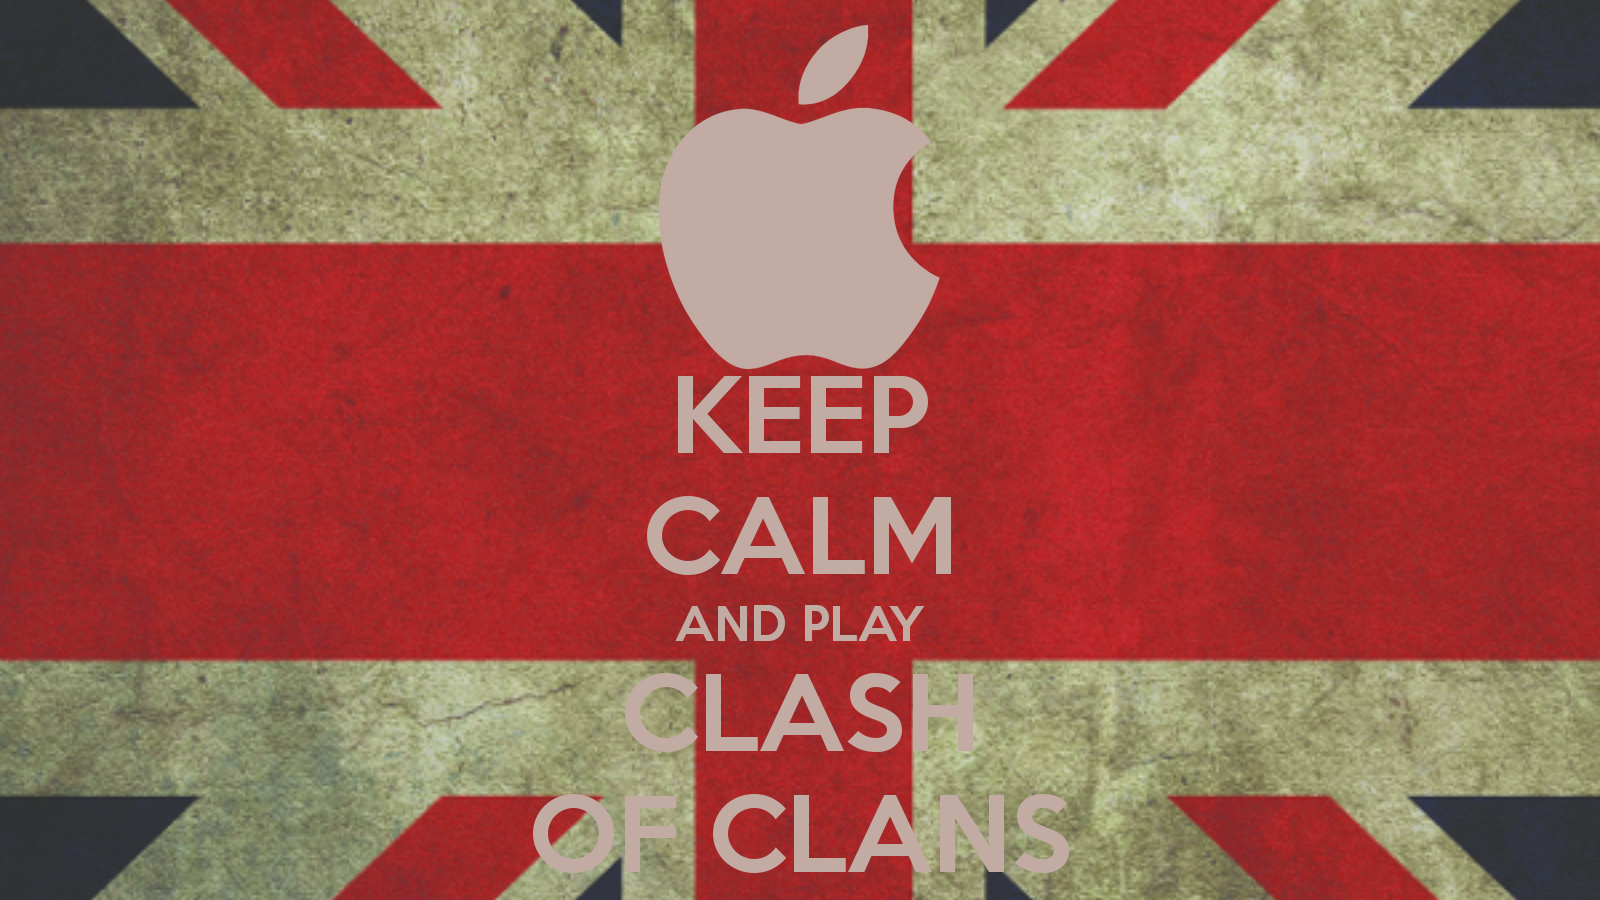 Keep Calm and Play Clash of Clans HD Wallpape